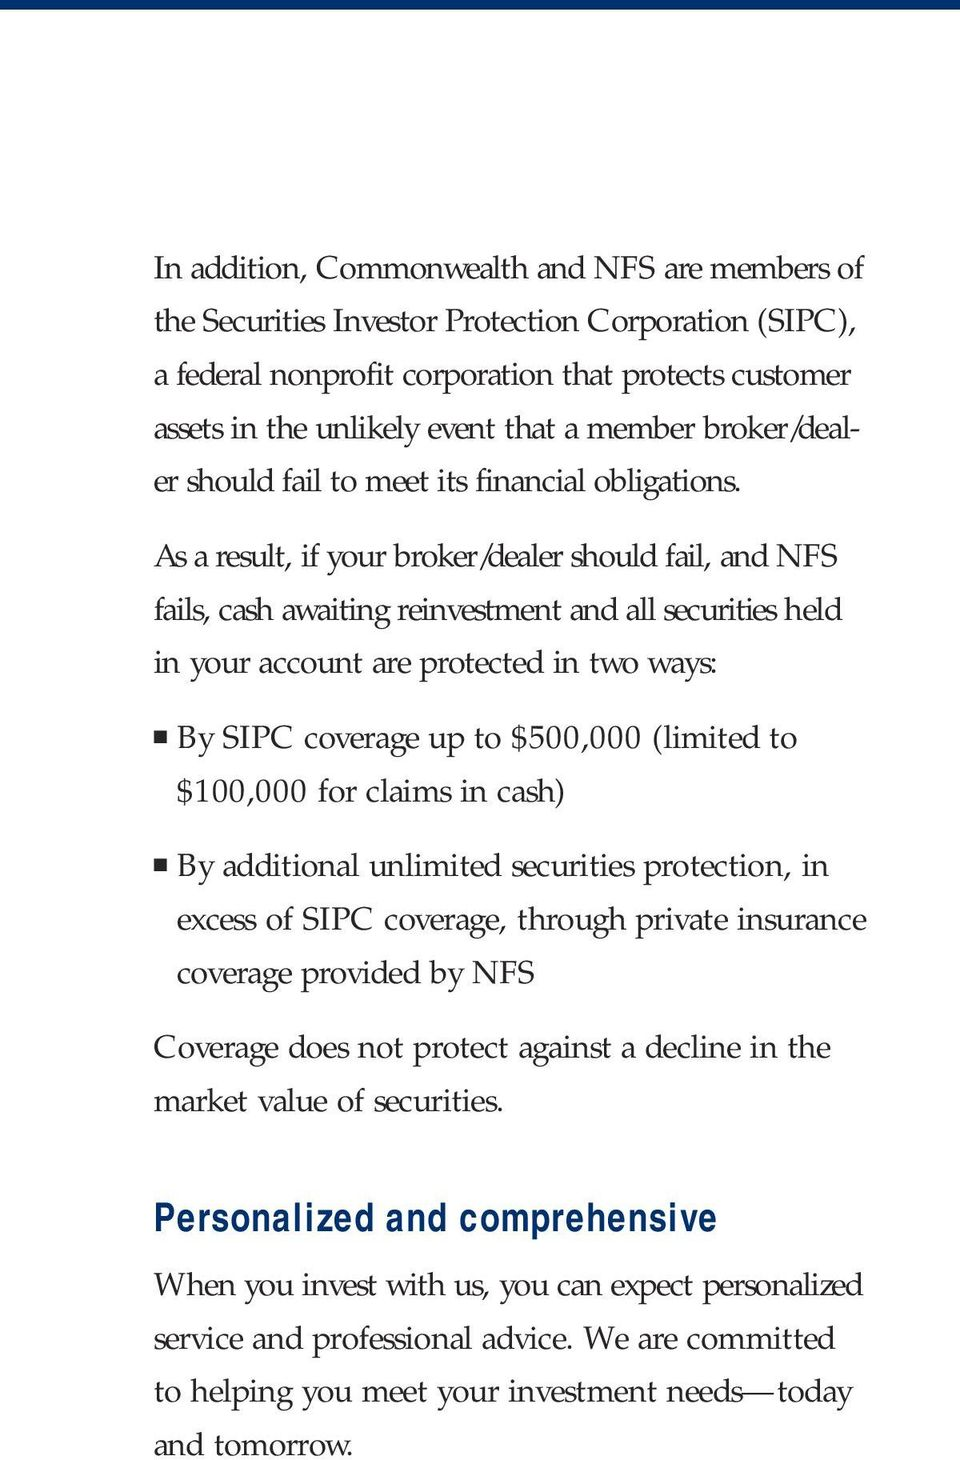 As a result, if your broker/dealer should fail, and NFS fails, cash awaiting reinvestment and all securities held in your account are protected in two ways: By SIPC coverage up to $500,000 (limited